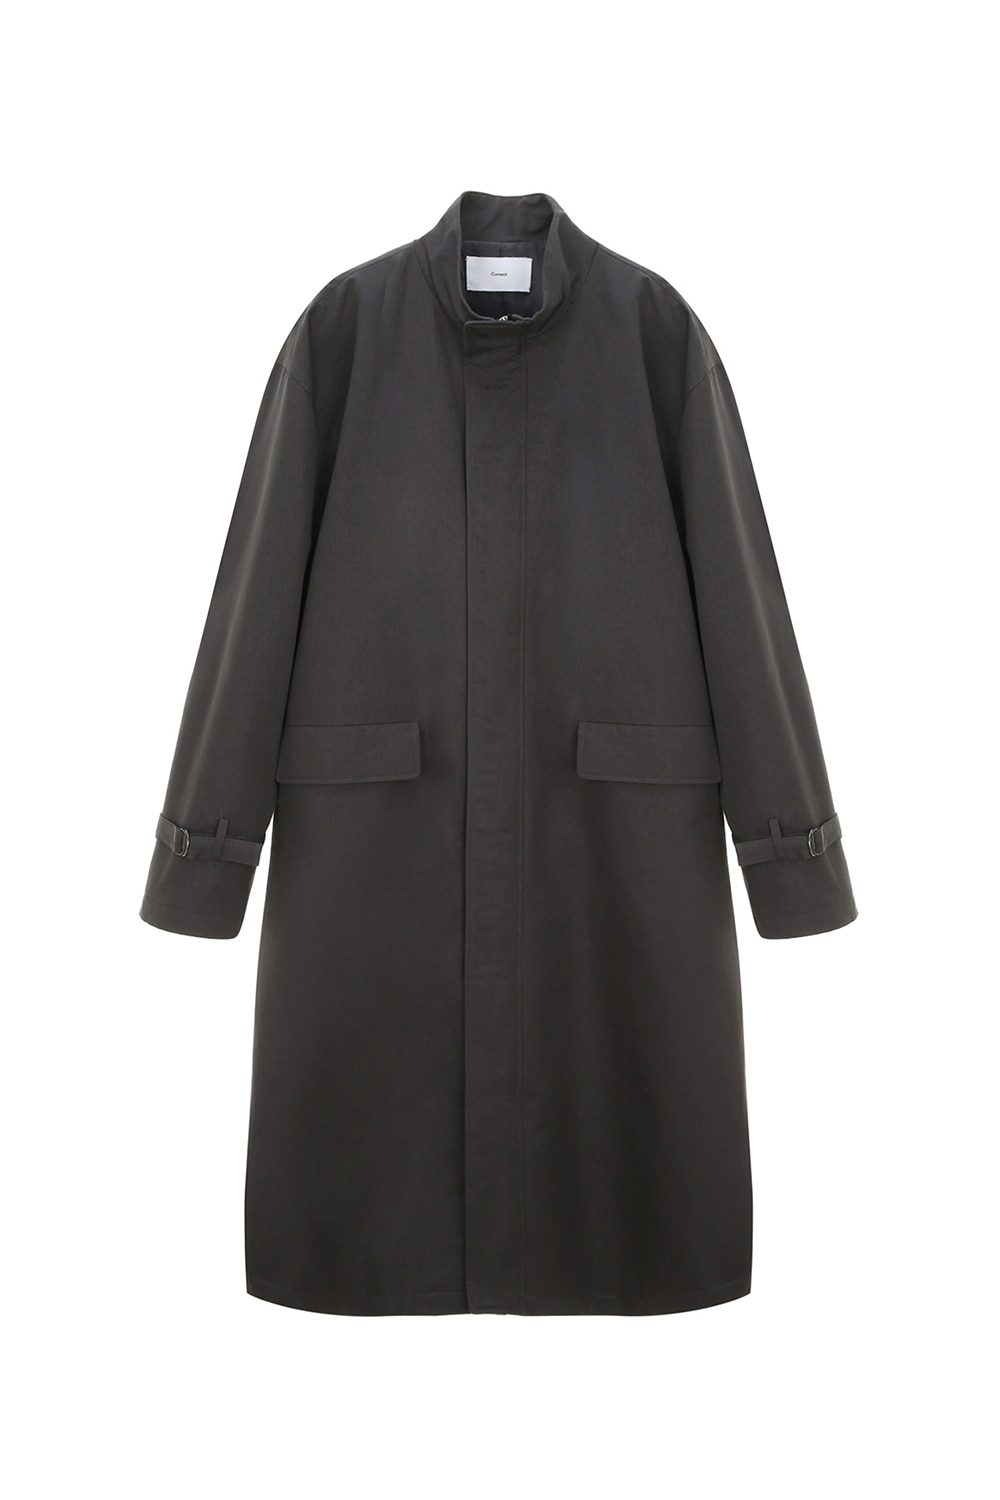 Mods Coat Men [Charcoal Gray]